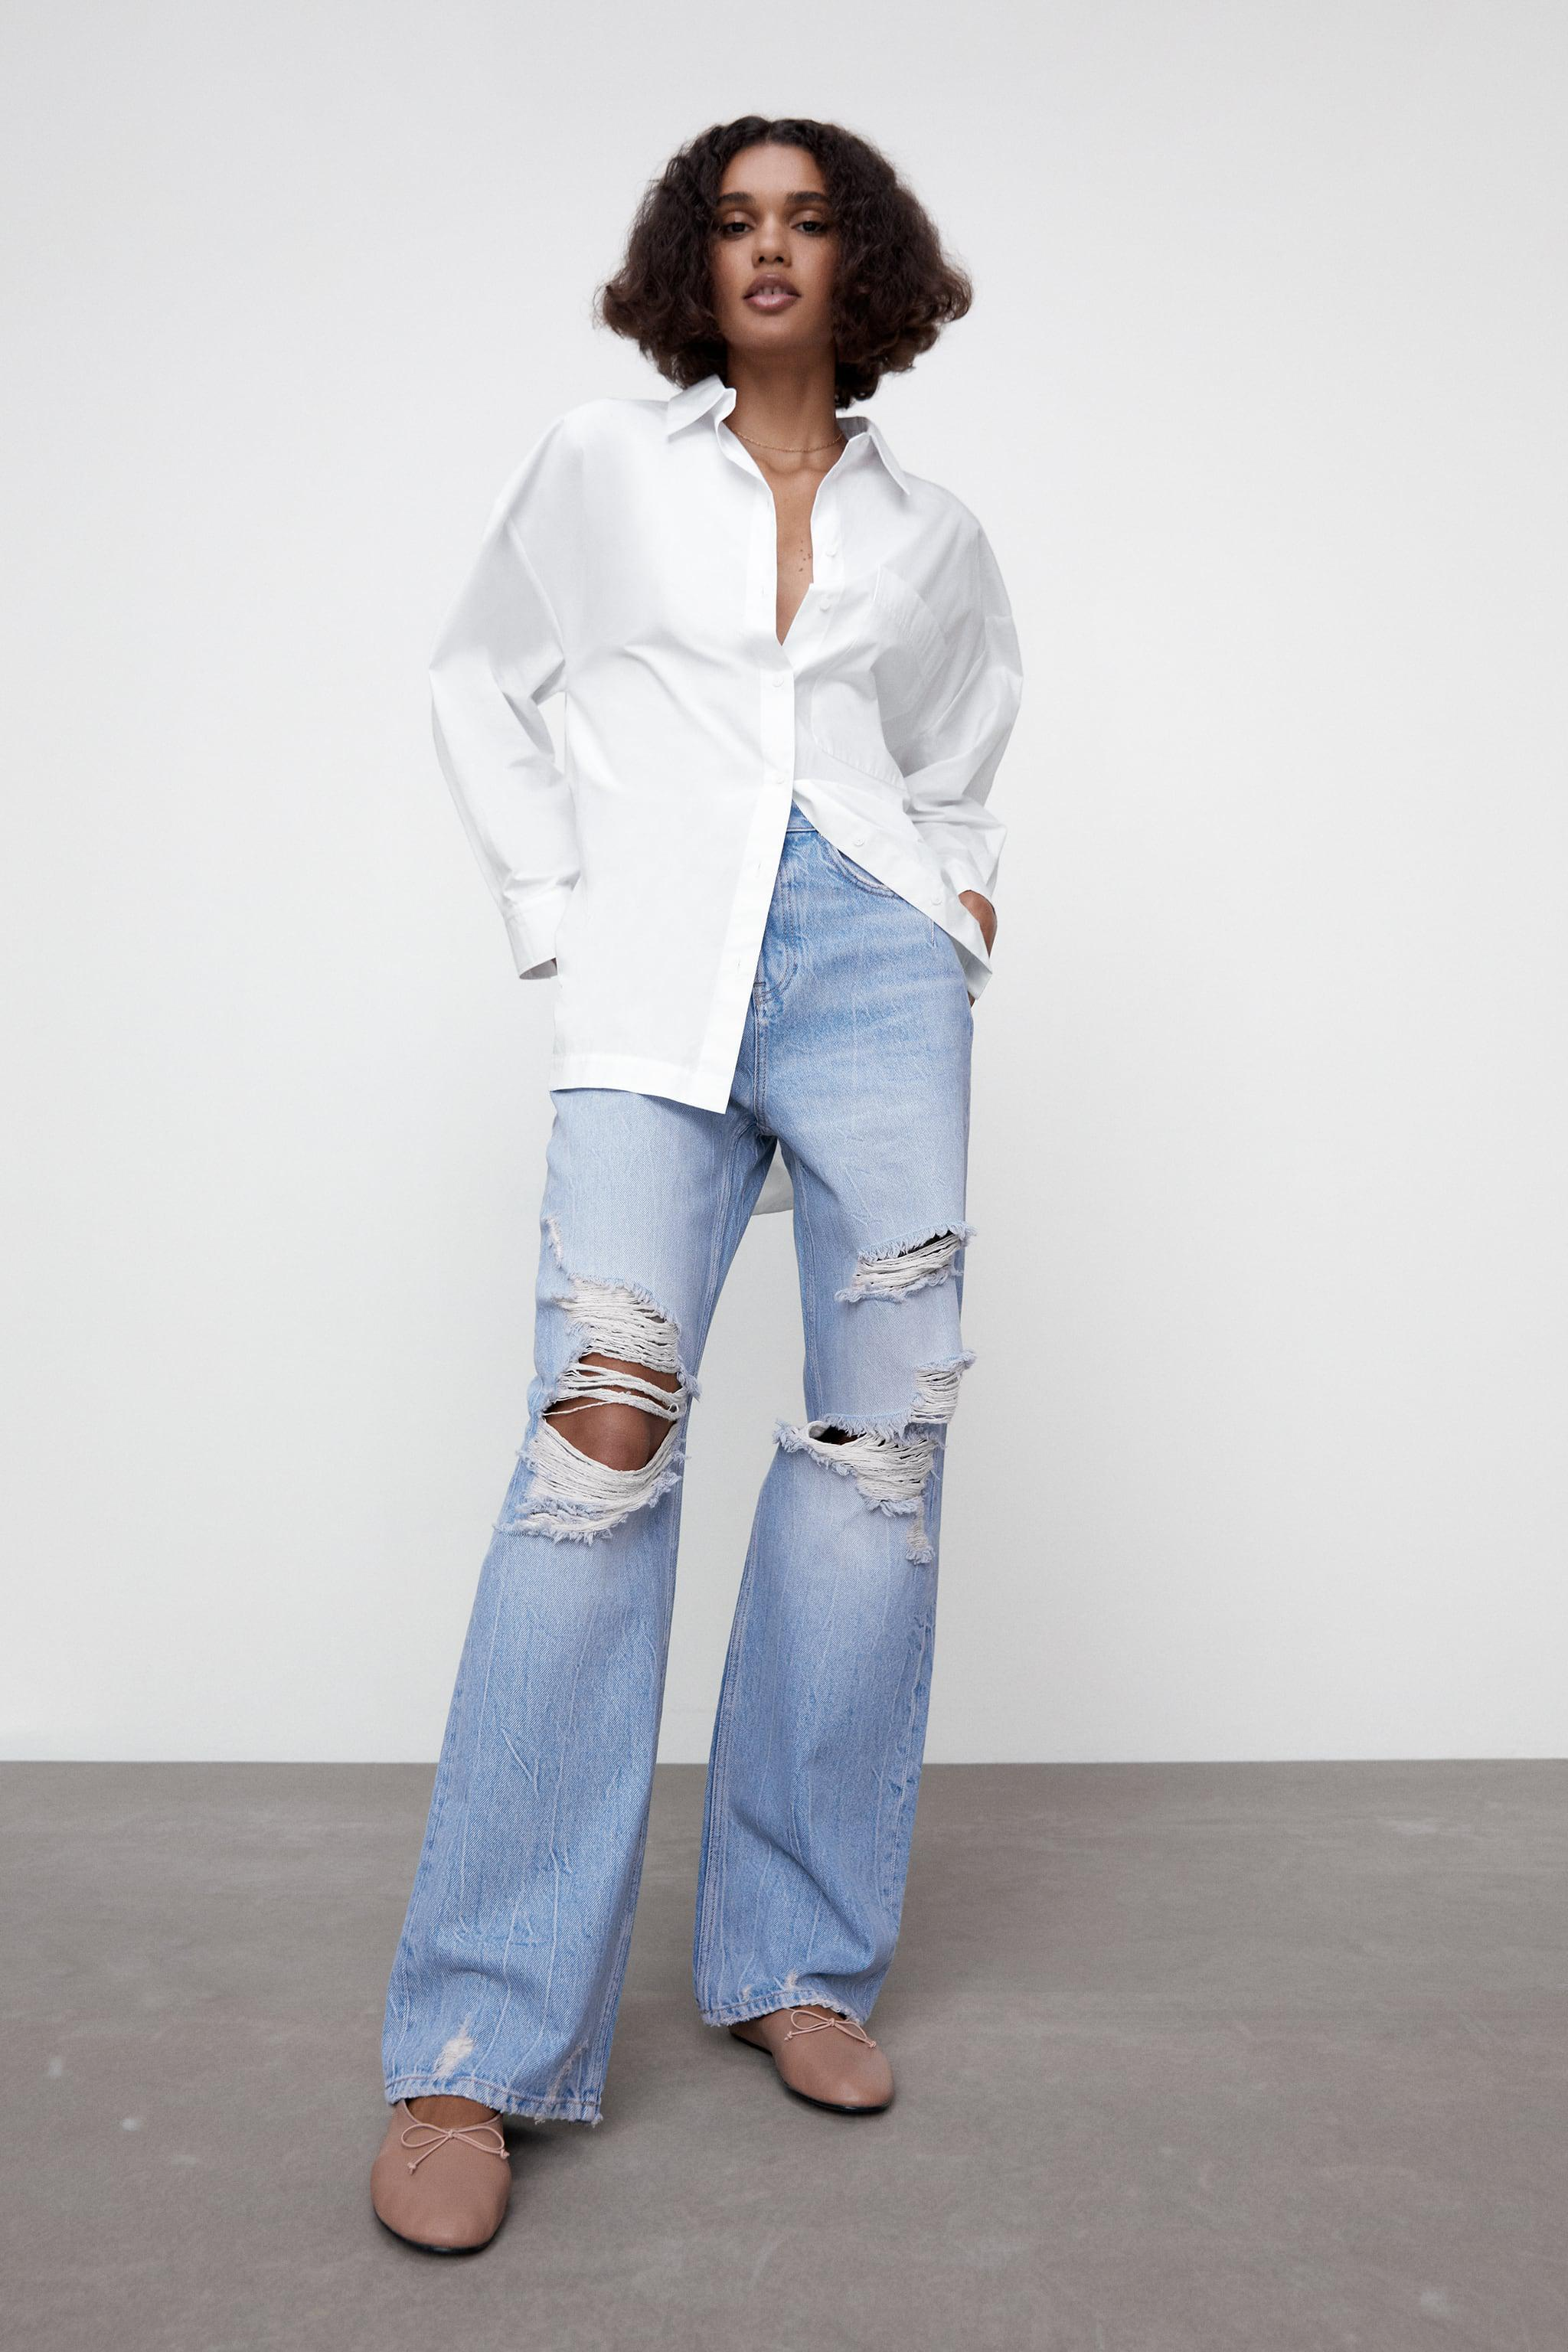 Z1975 HI-RISE STRAIGHT LEG JEANS WITH RIPS